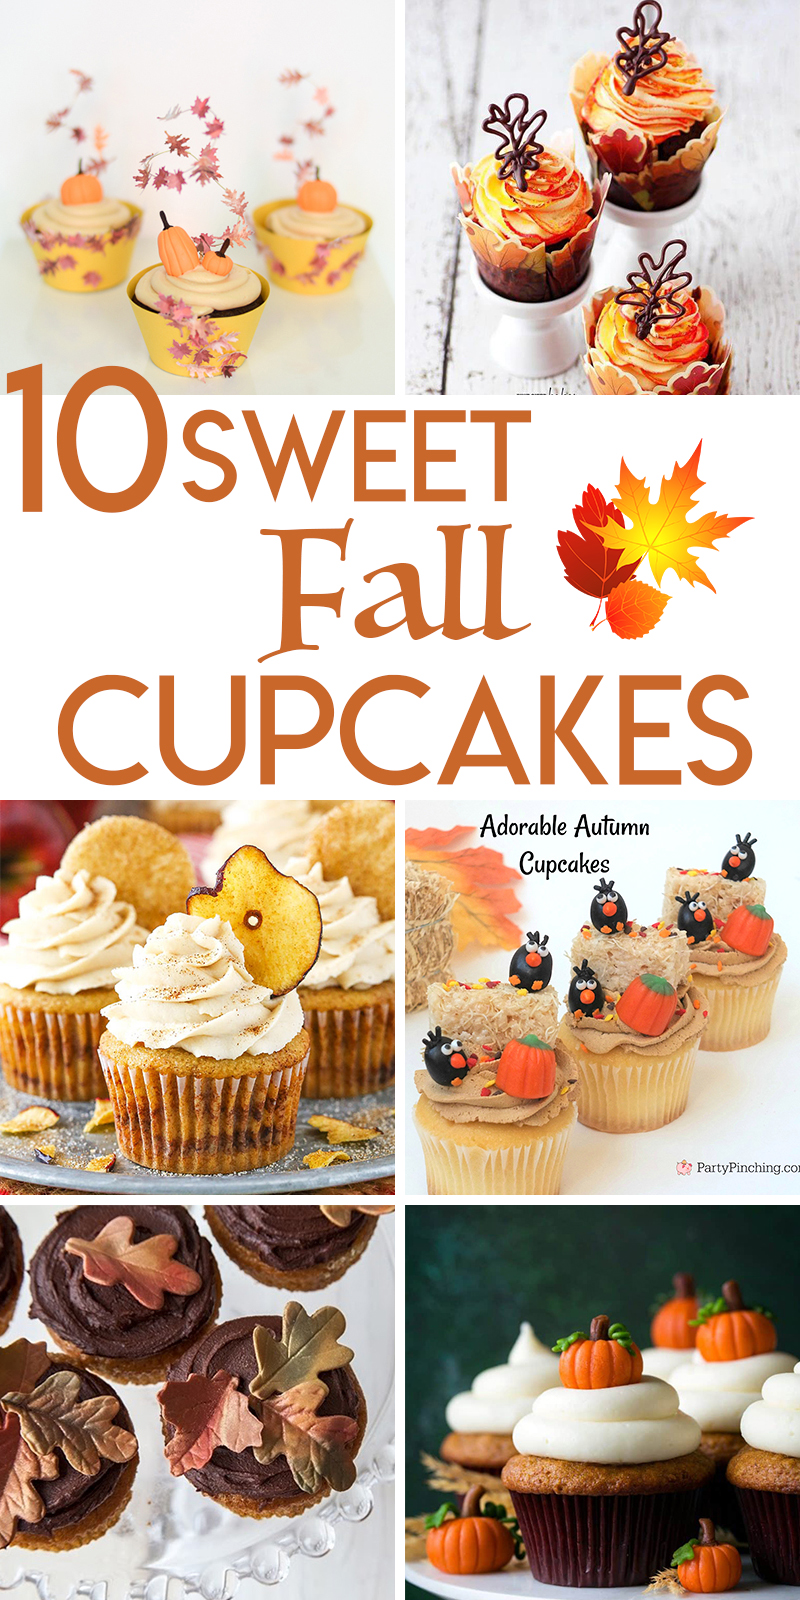 10 Sweet Cupcake Recipes for Fall